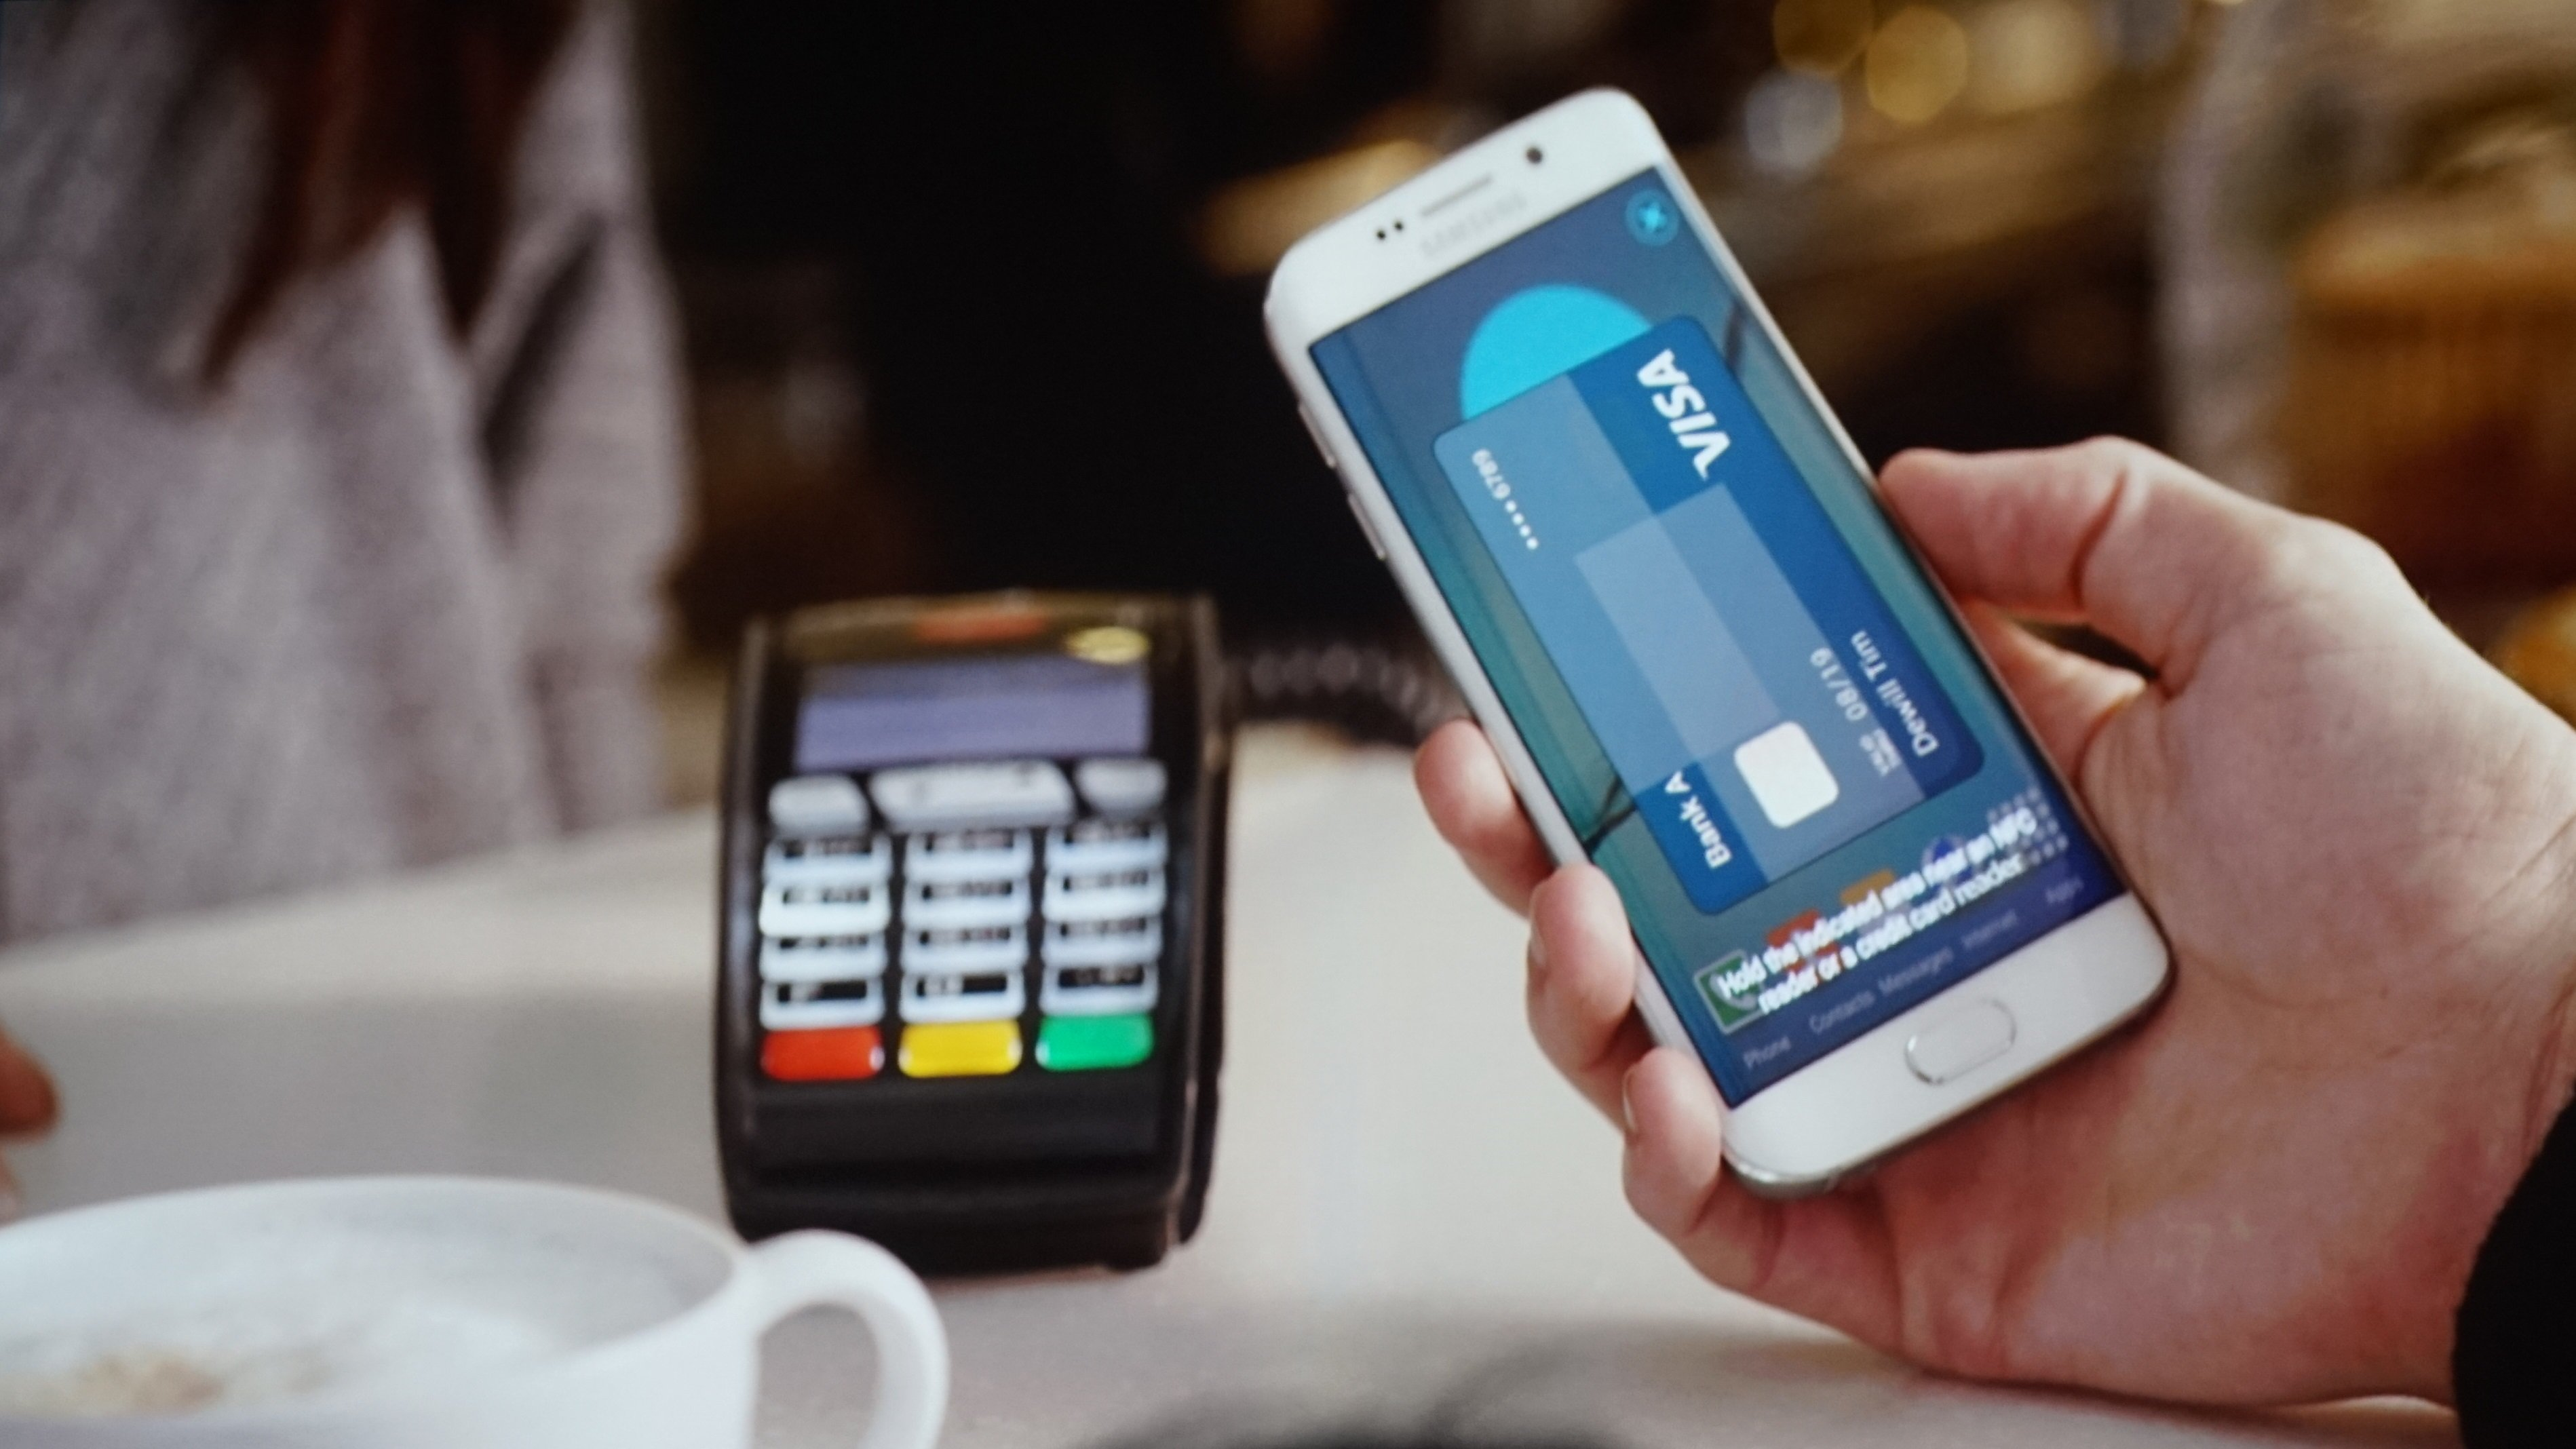 Samsung Pay vs Android Pay vs Apple Pay comparison: which is